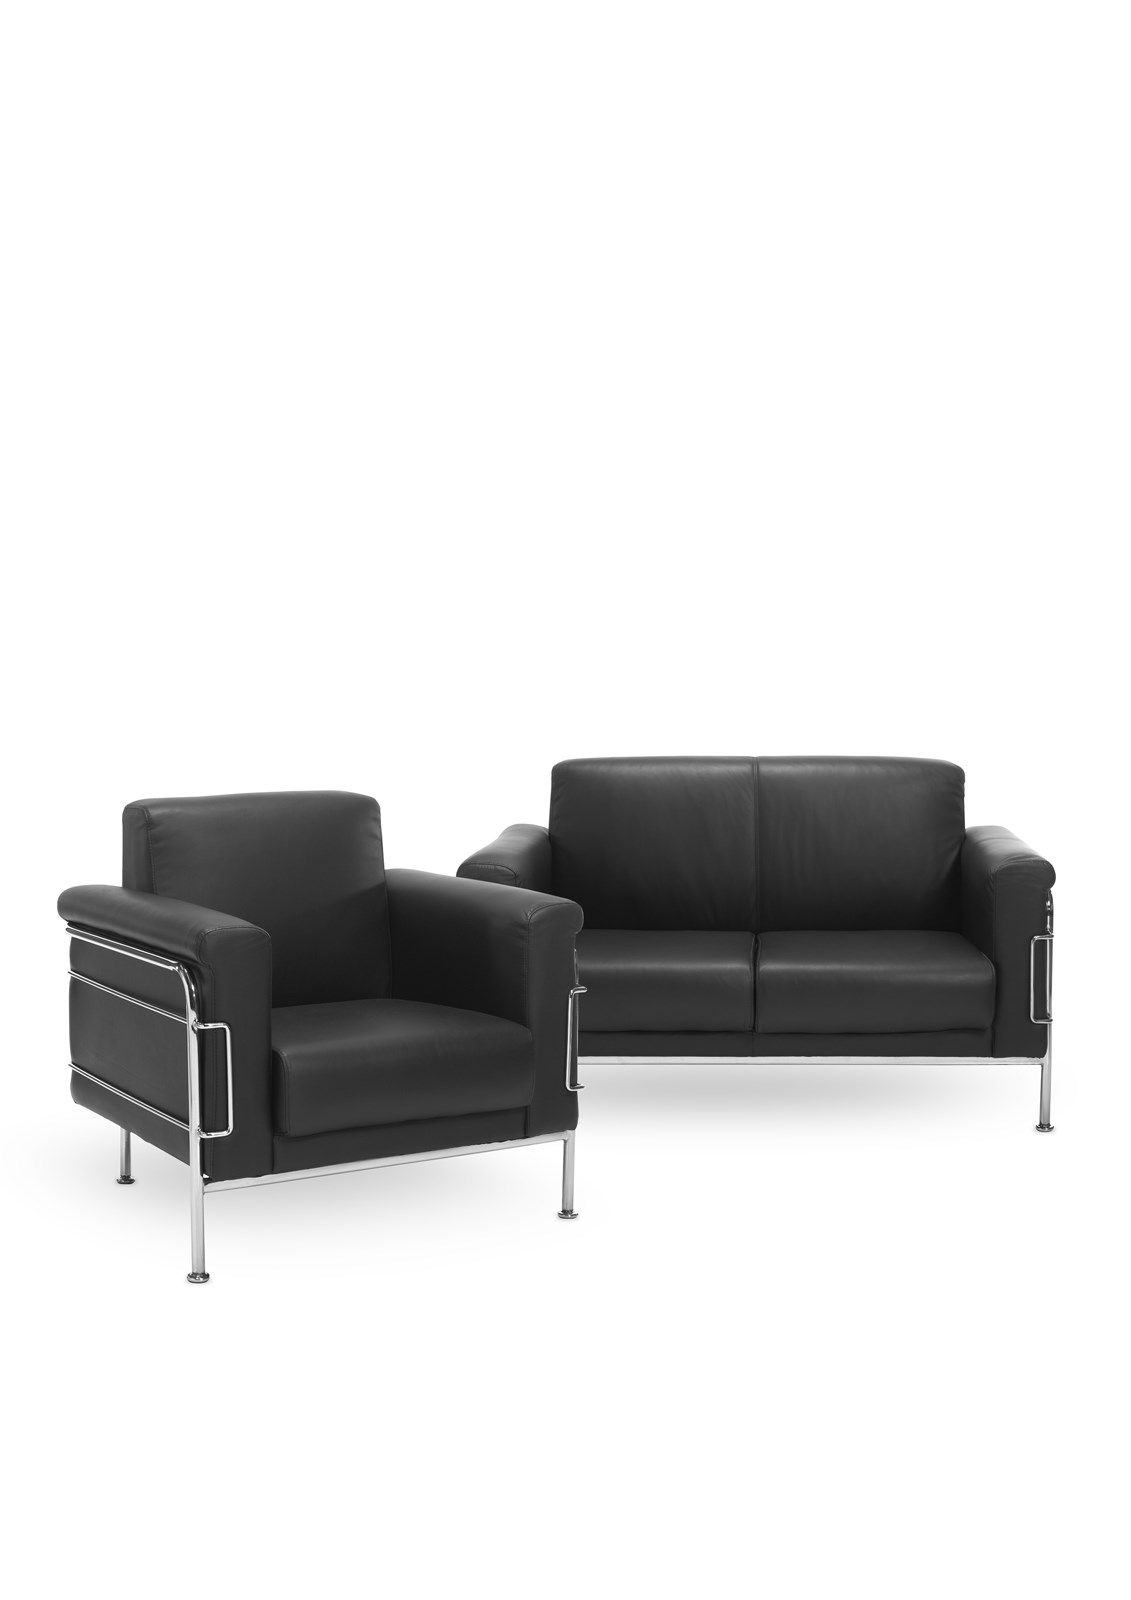 Napoli Reception Chair Sofa From Elite Office Furniture With